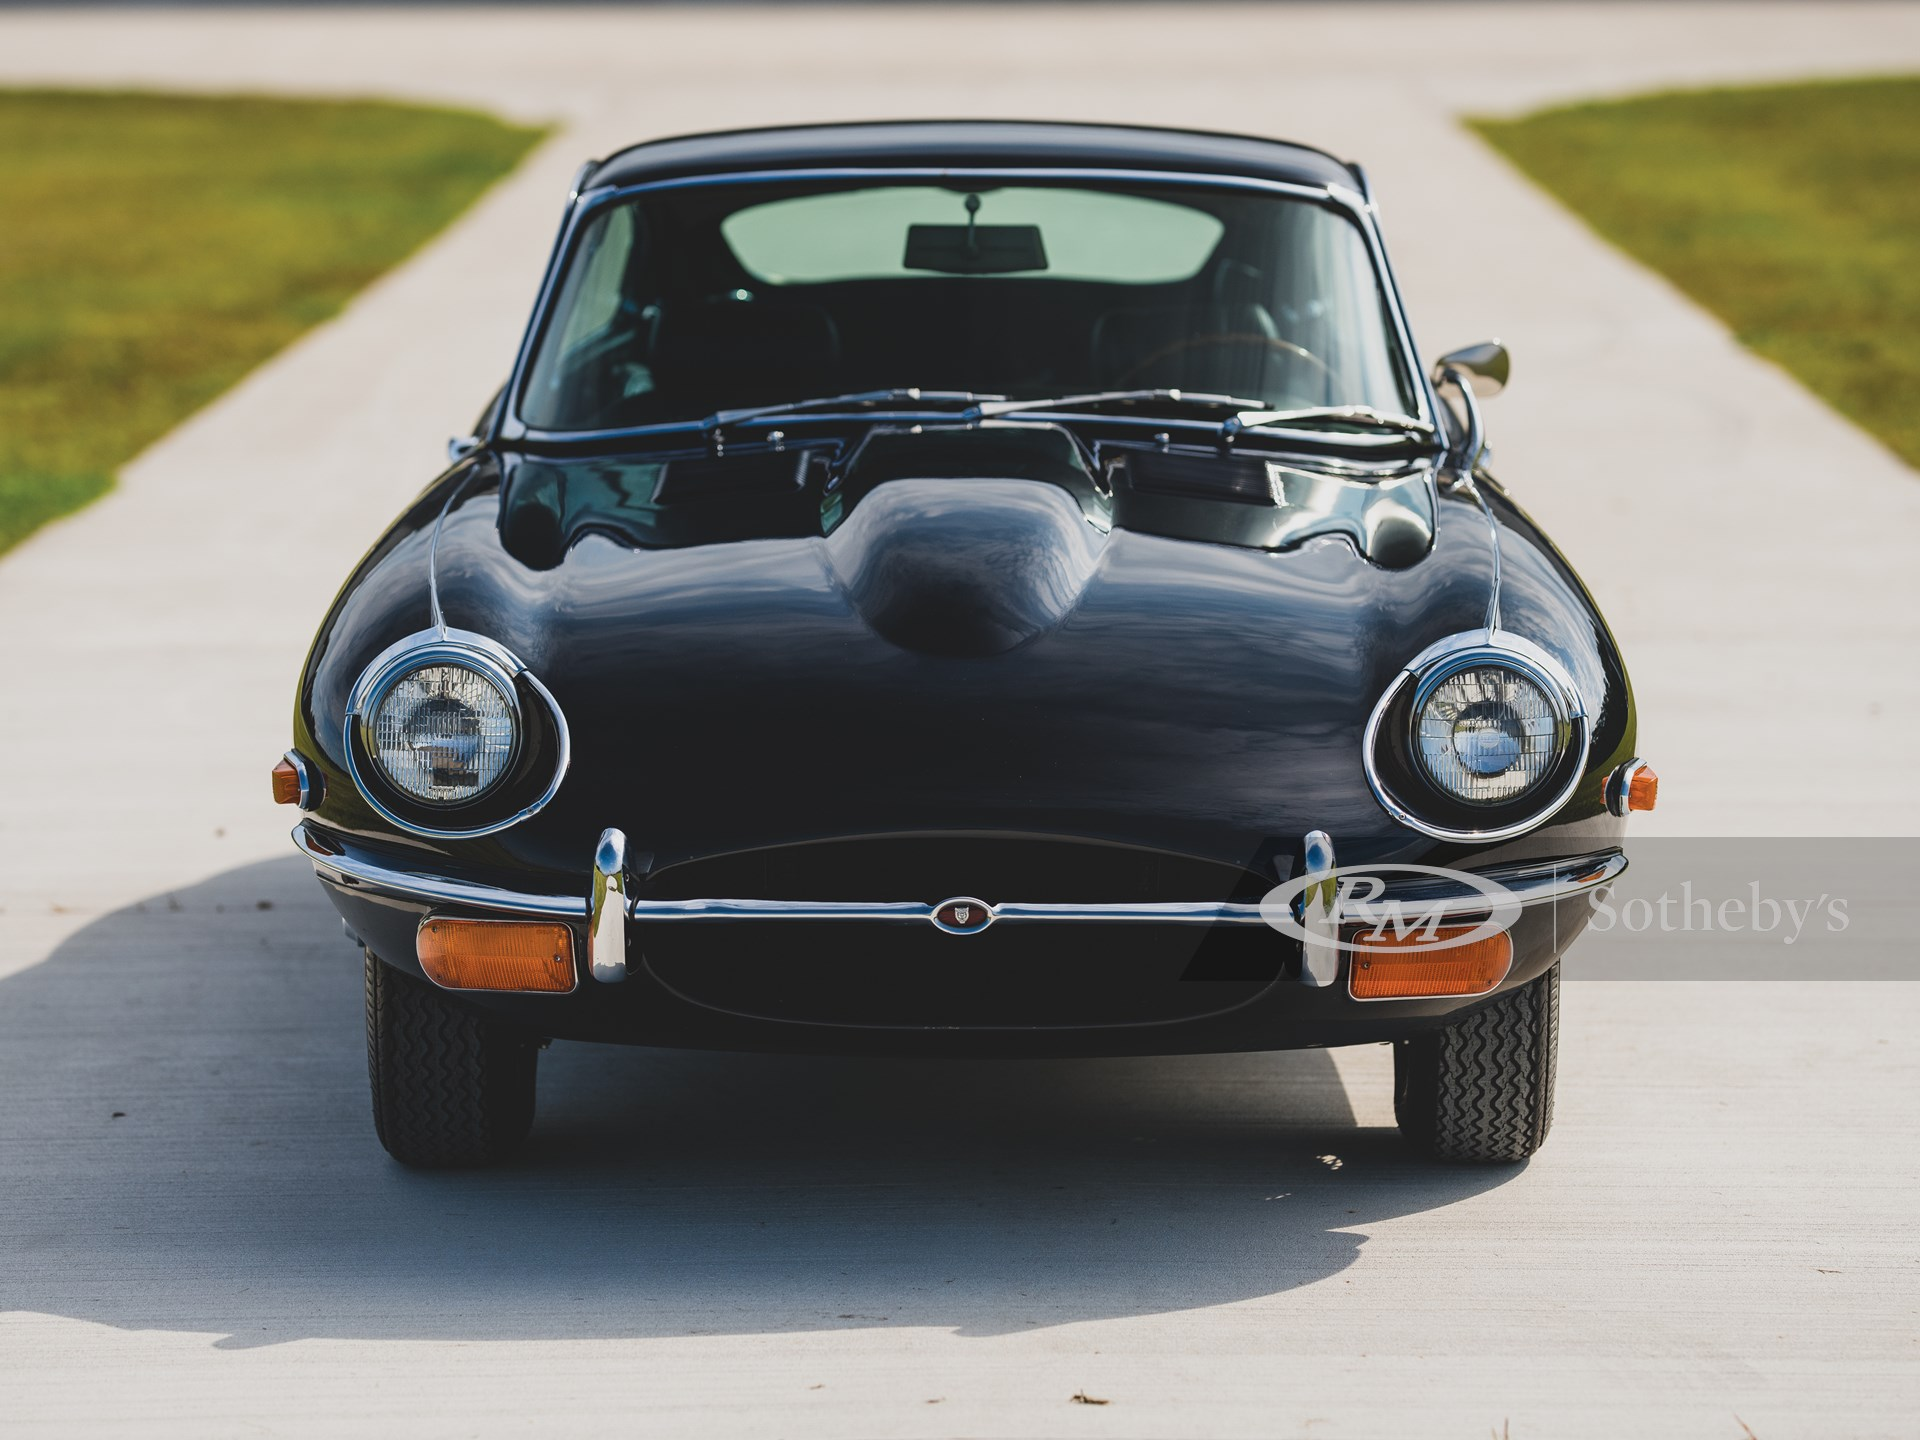 1971 Jaguar E-Type Series 2 4.2-Litre Fixed-Head Coupe  -